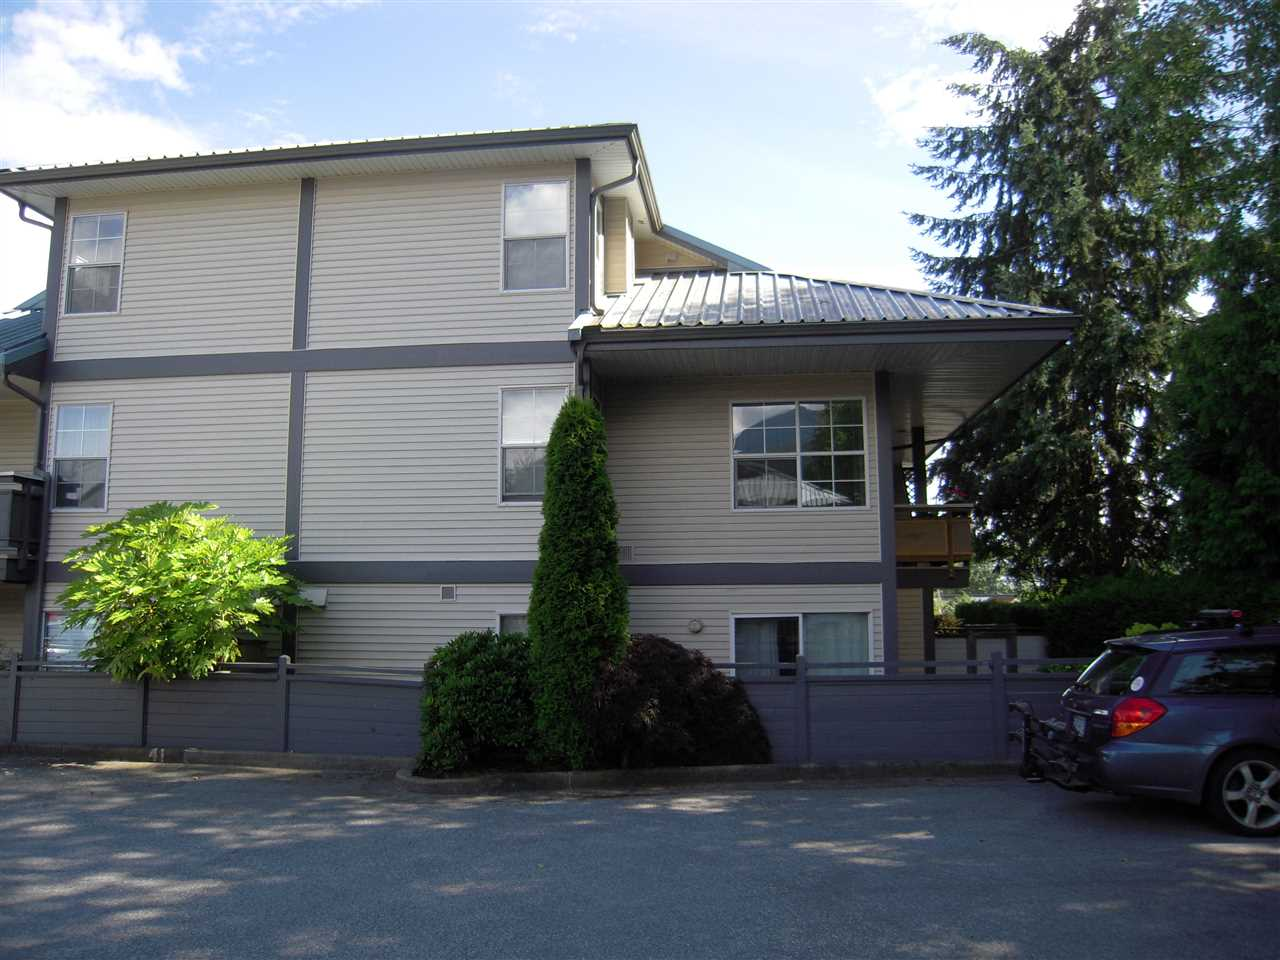 Photo 1: Photos: 43 689 PARK Road in Gibsons: Gibsons & Area Condo for sale (Sunshine Coast)  : MLS® # R2081854